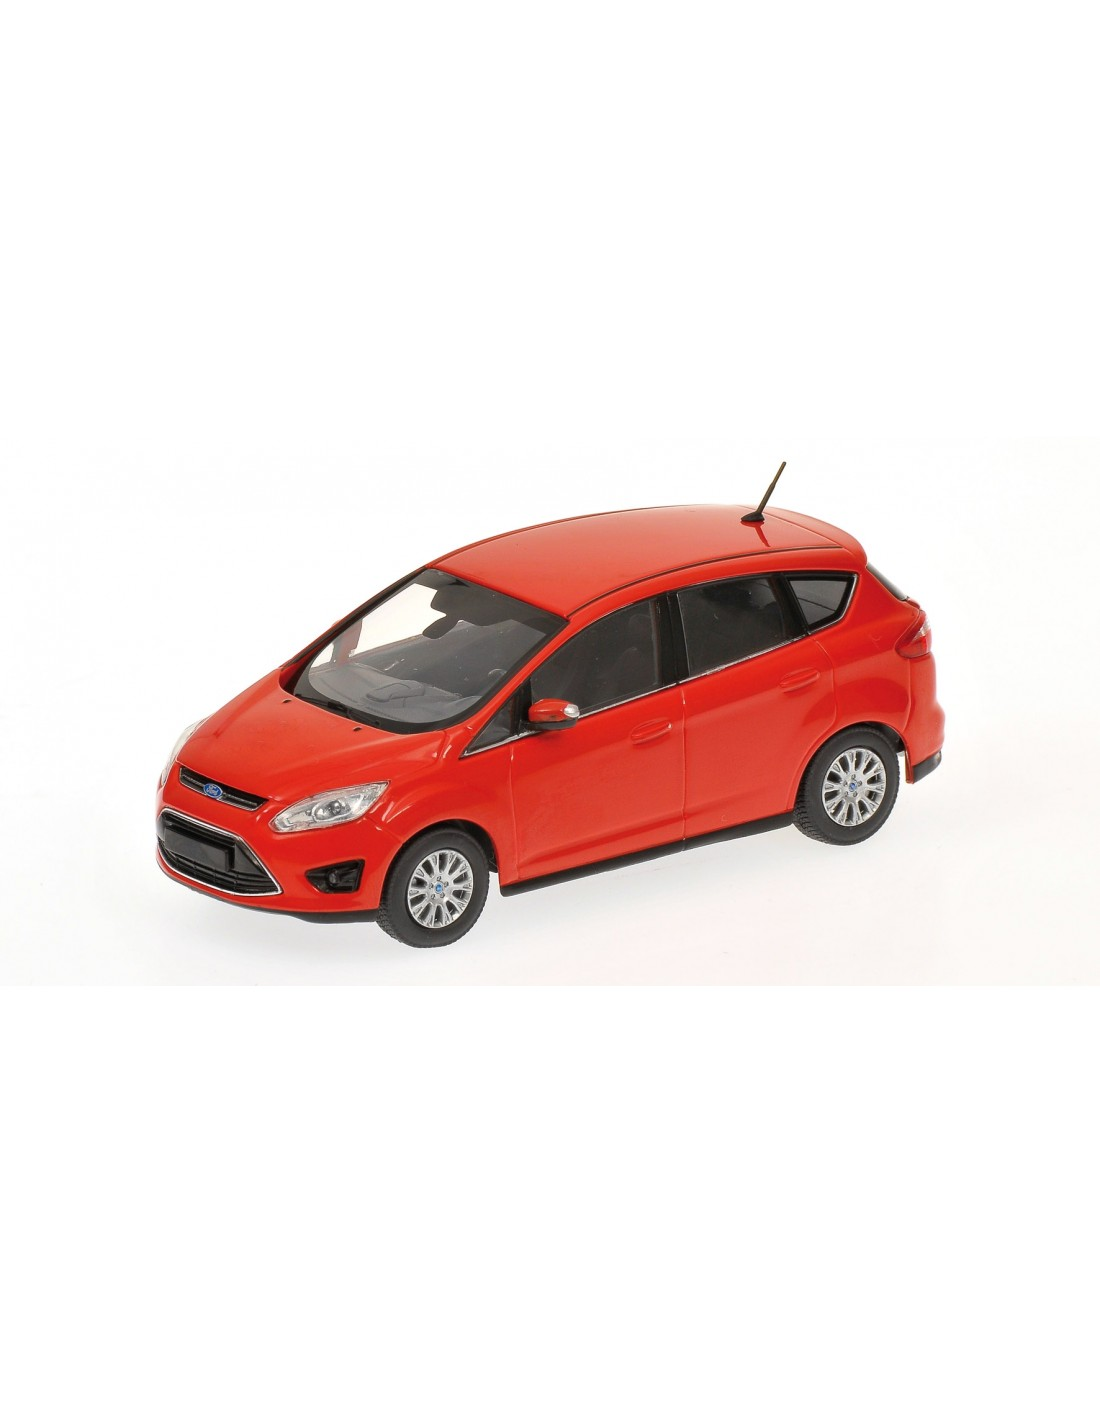 minichamps ford c max compact 2010 red. Black Bedroom Furniture Sets. Home Design Ideas